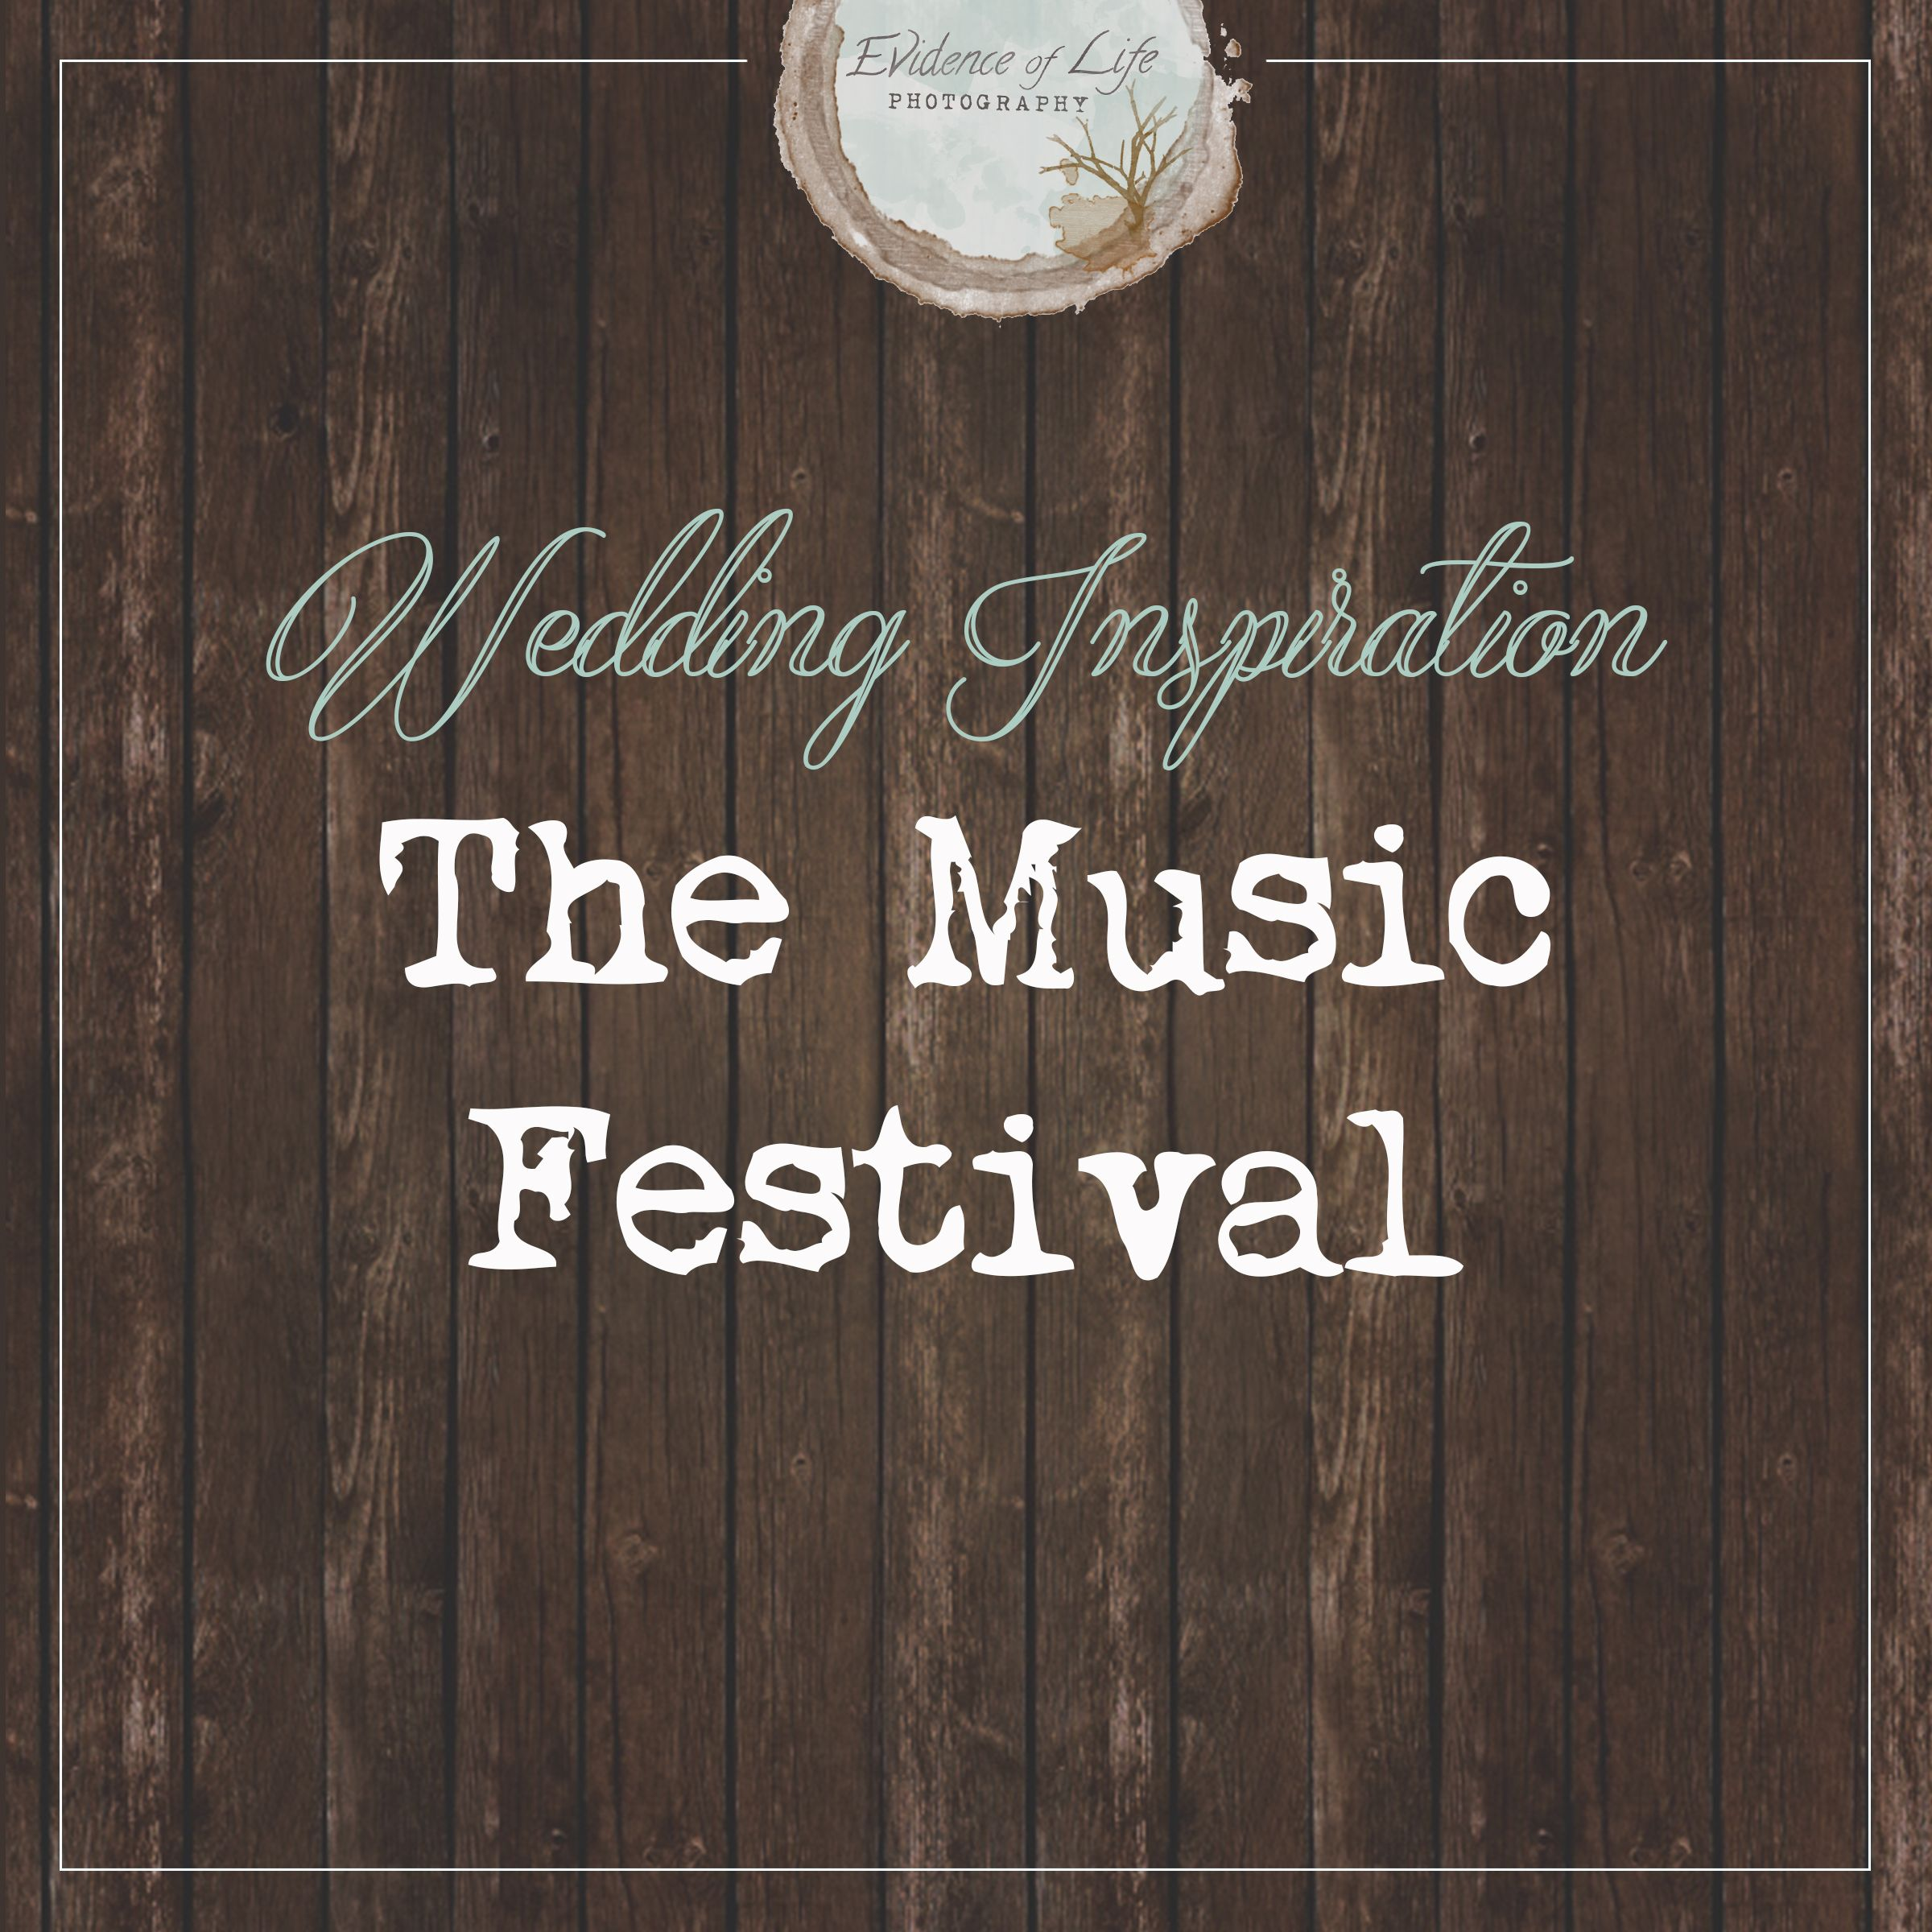 Music Themed Portrait & Wedding Inspiration Image By